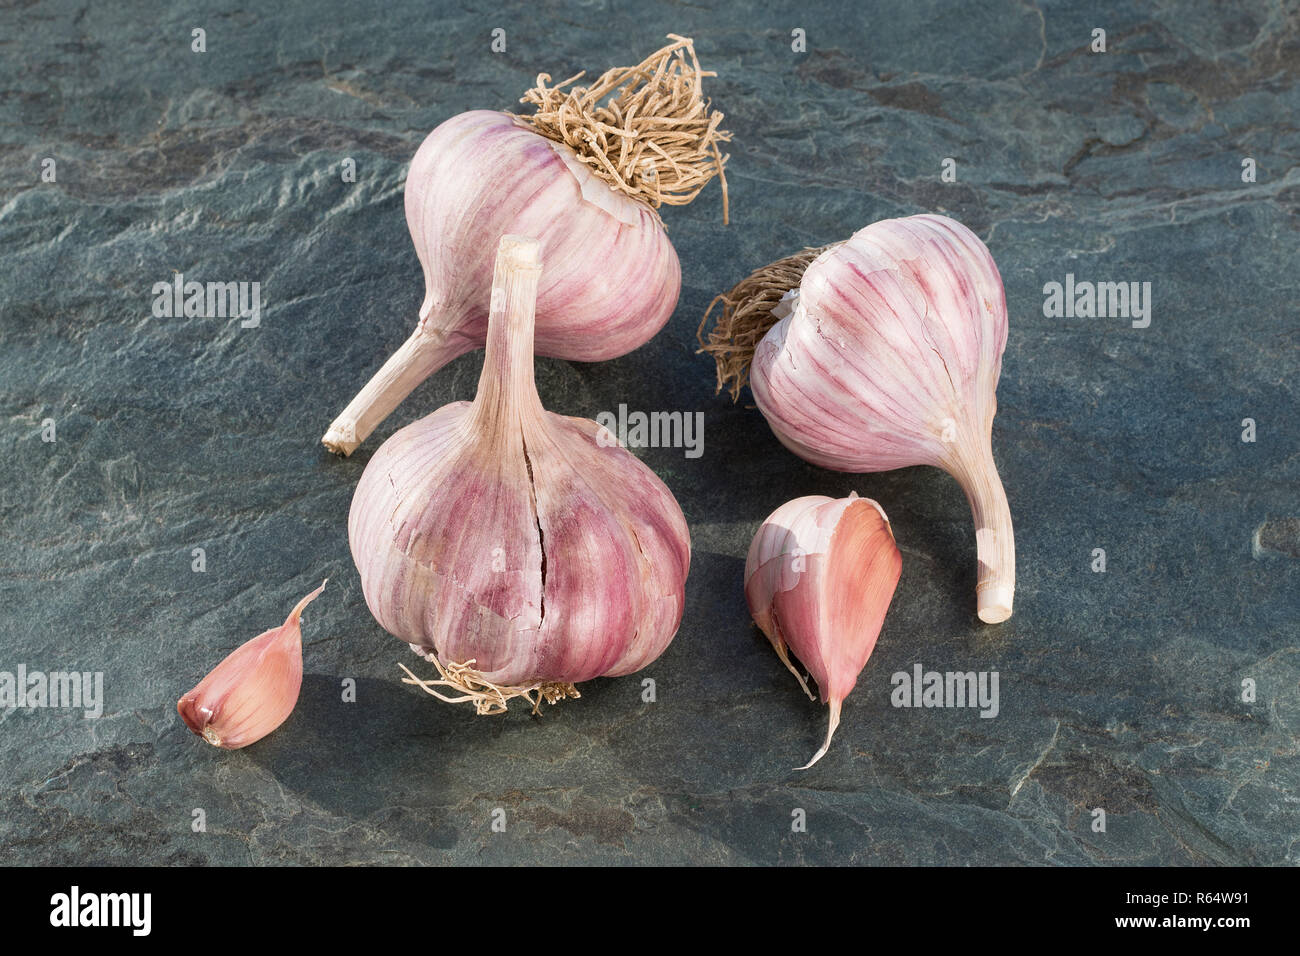 Garlic of a new harvest on the stone textured tabletop. Garlic the best drug for influenza. Concept alternative medicine, medical treatment. - Stock Image